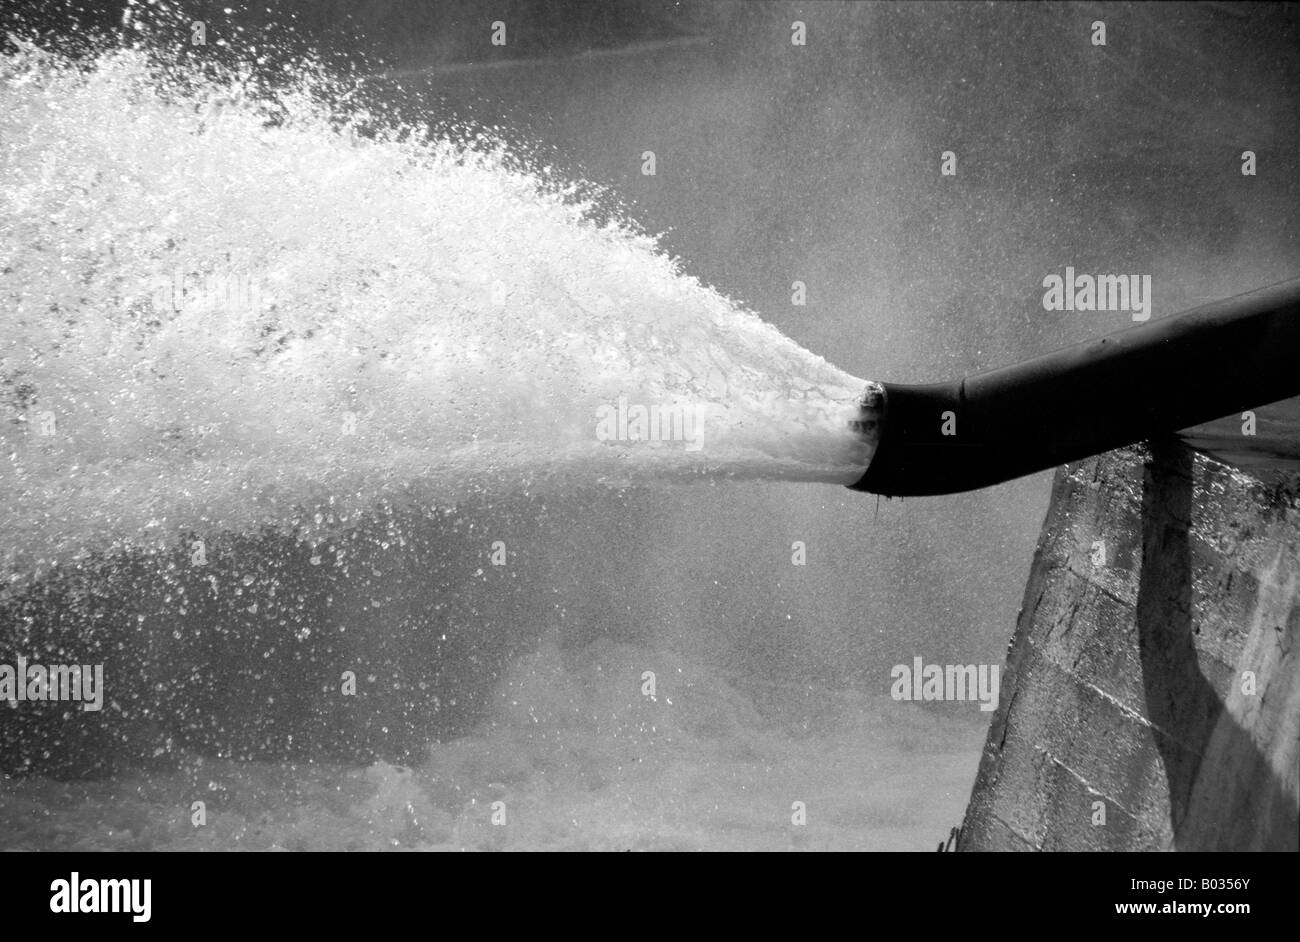 Water Pipe Black and White Stock Photos & Images - Alamy